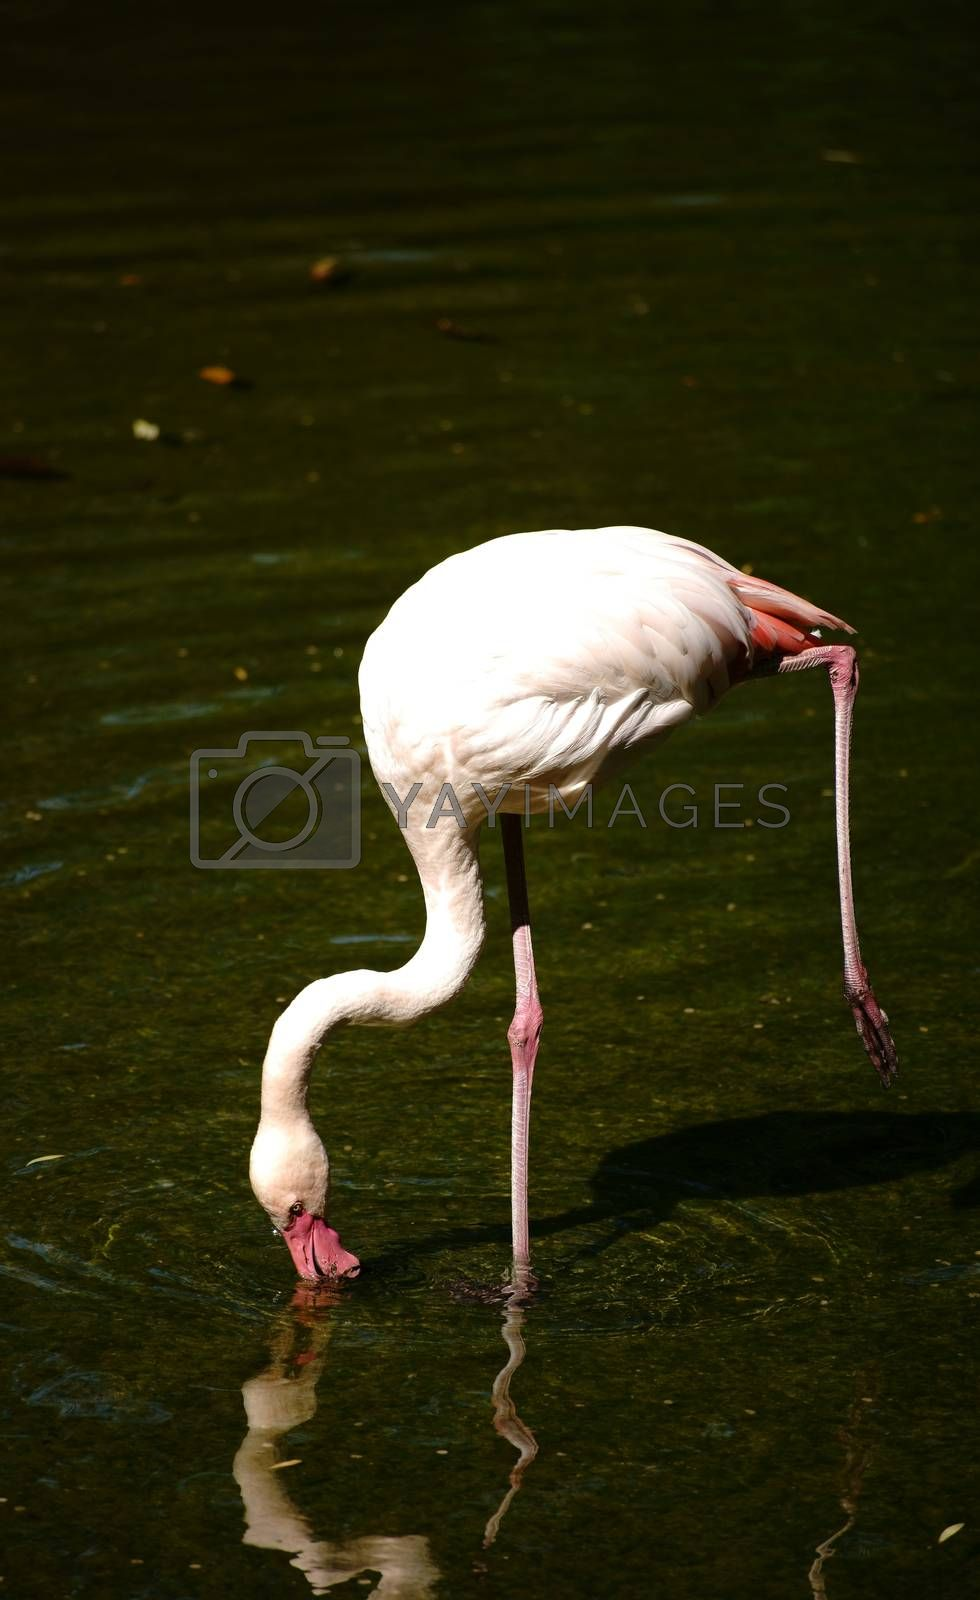 A pink flamingo standing on one leg and is reflected in the water.